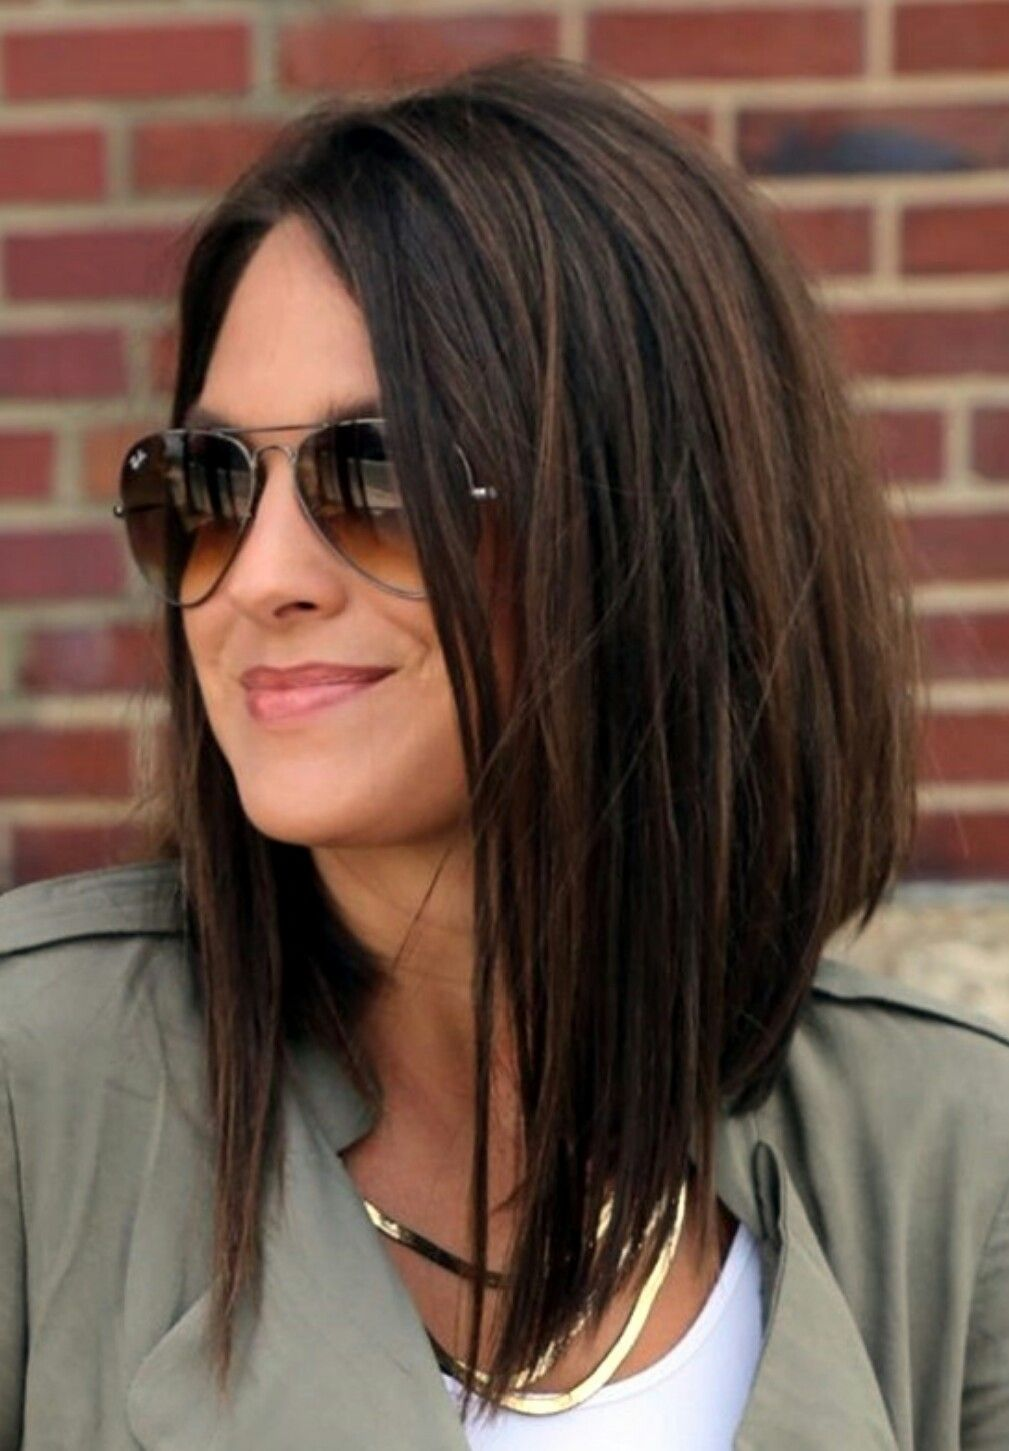 Women's Long Hairstyles Simple Love This Cut Just Need To Find The Guts To Actually Follow